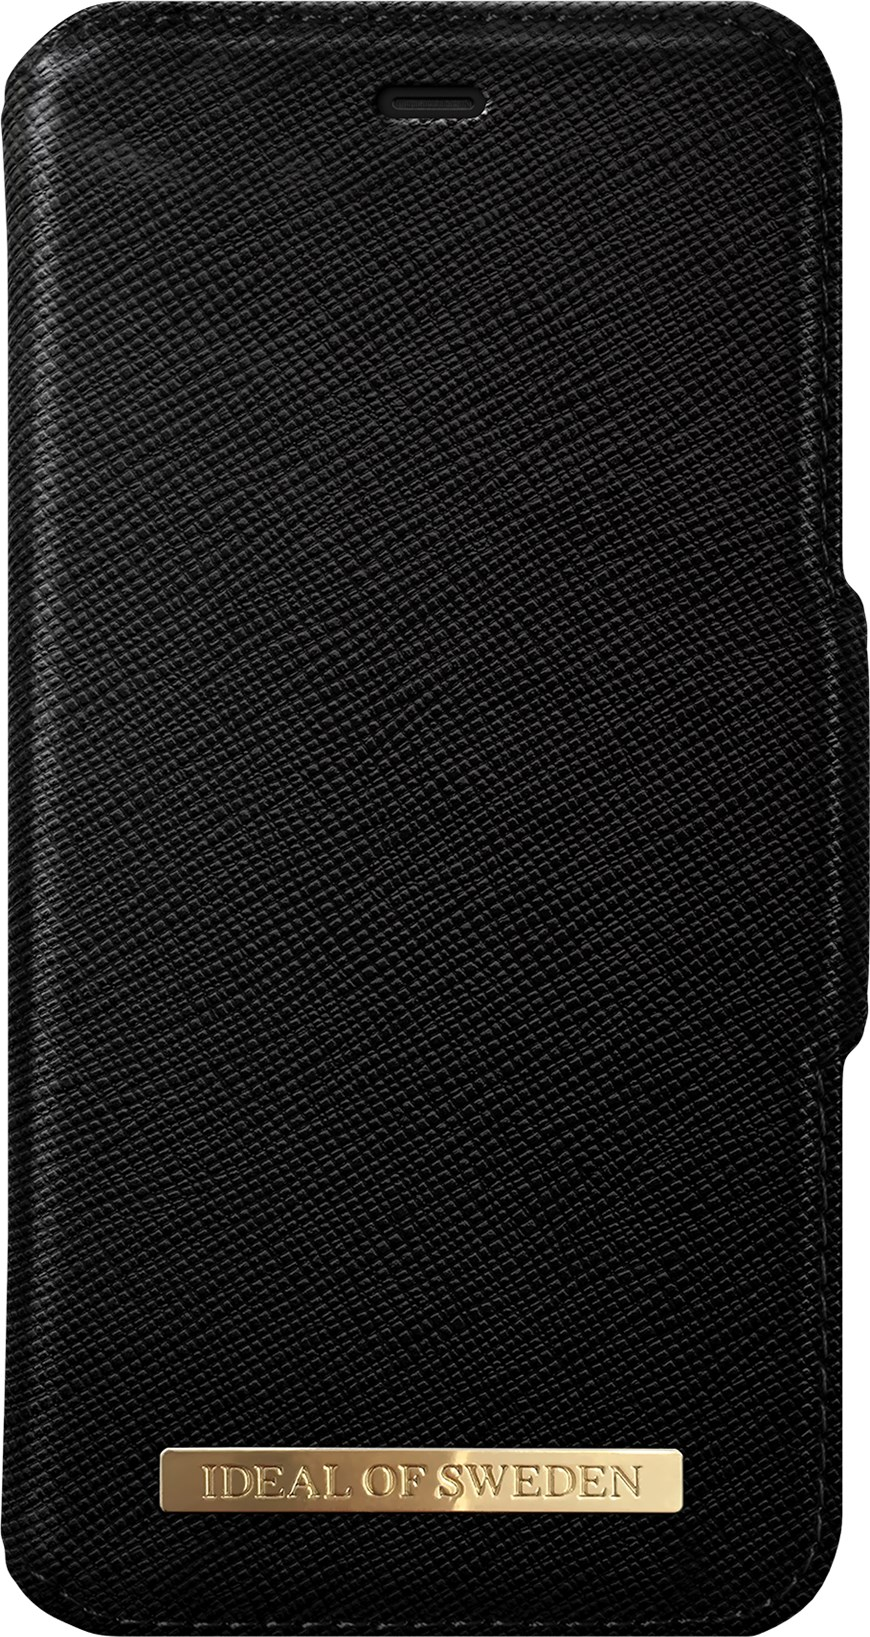 iDeal of Sweden Ideal Fashion Wallet Iphone 11 Pro Black